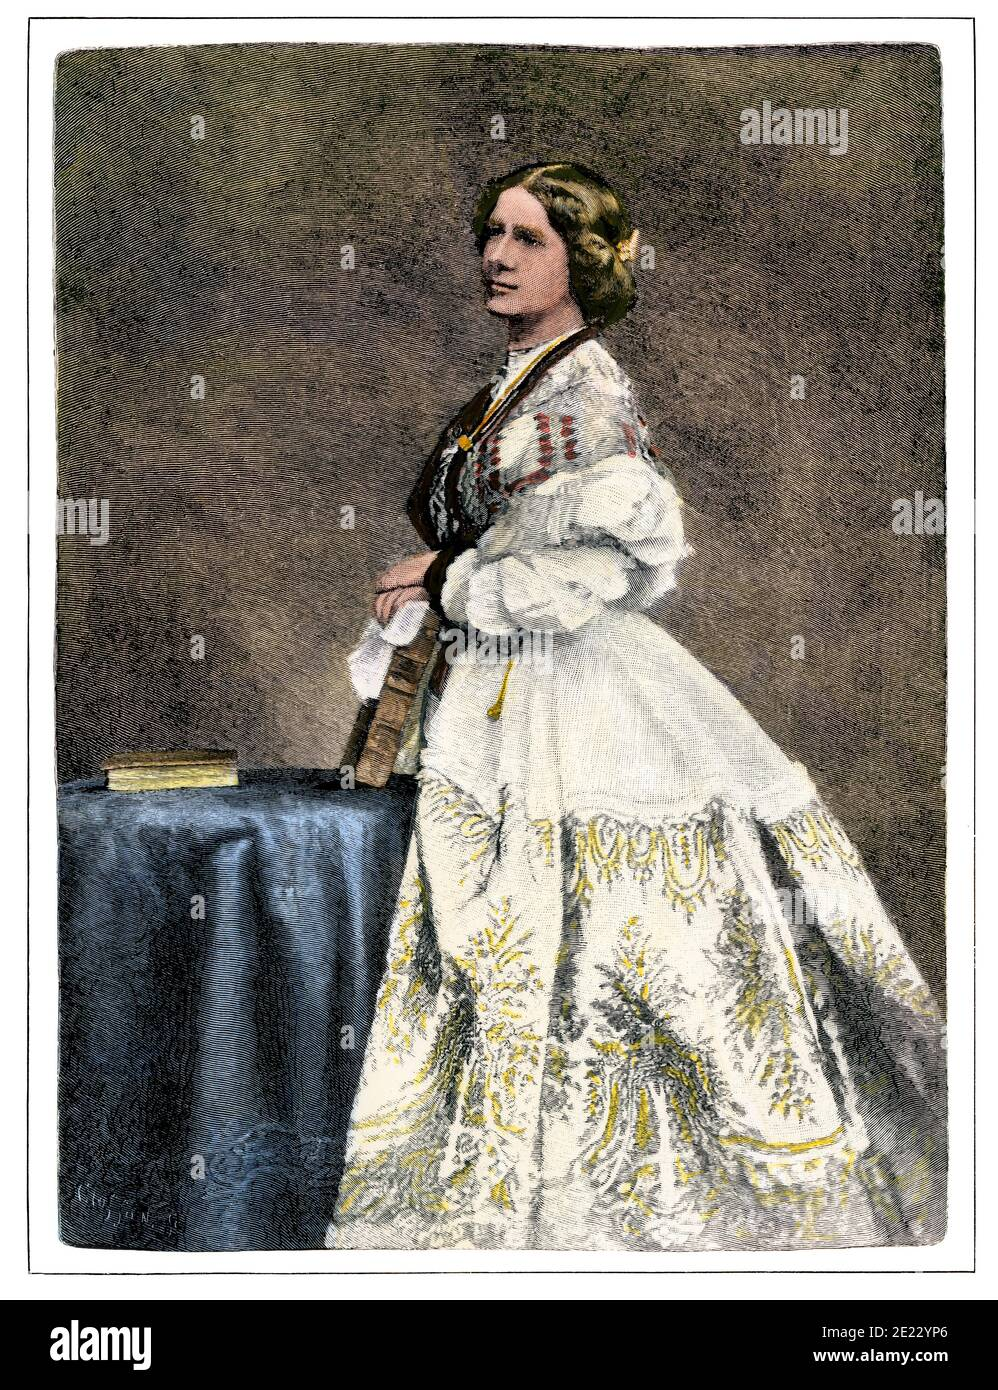 """Singer Jenny Lind Goldschmidt, """"The Swedish Nightingale,"""" 1800s. Hand-colored woodcut of a photograph Stock Photo"""